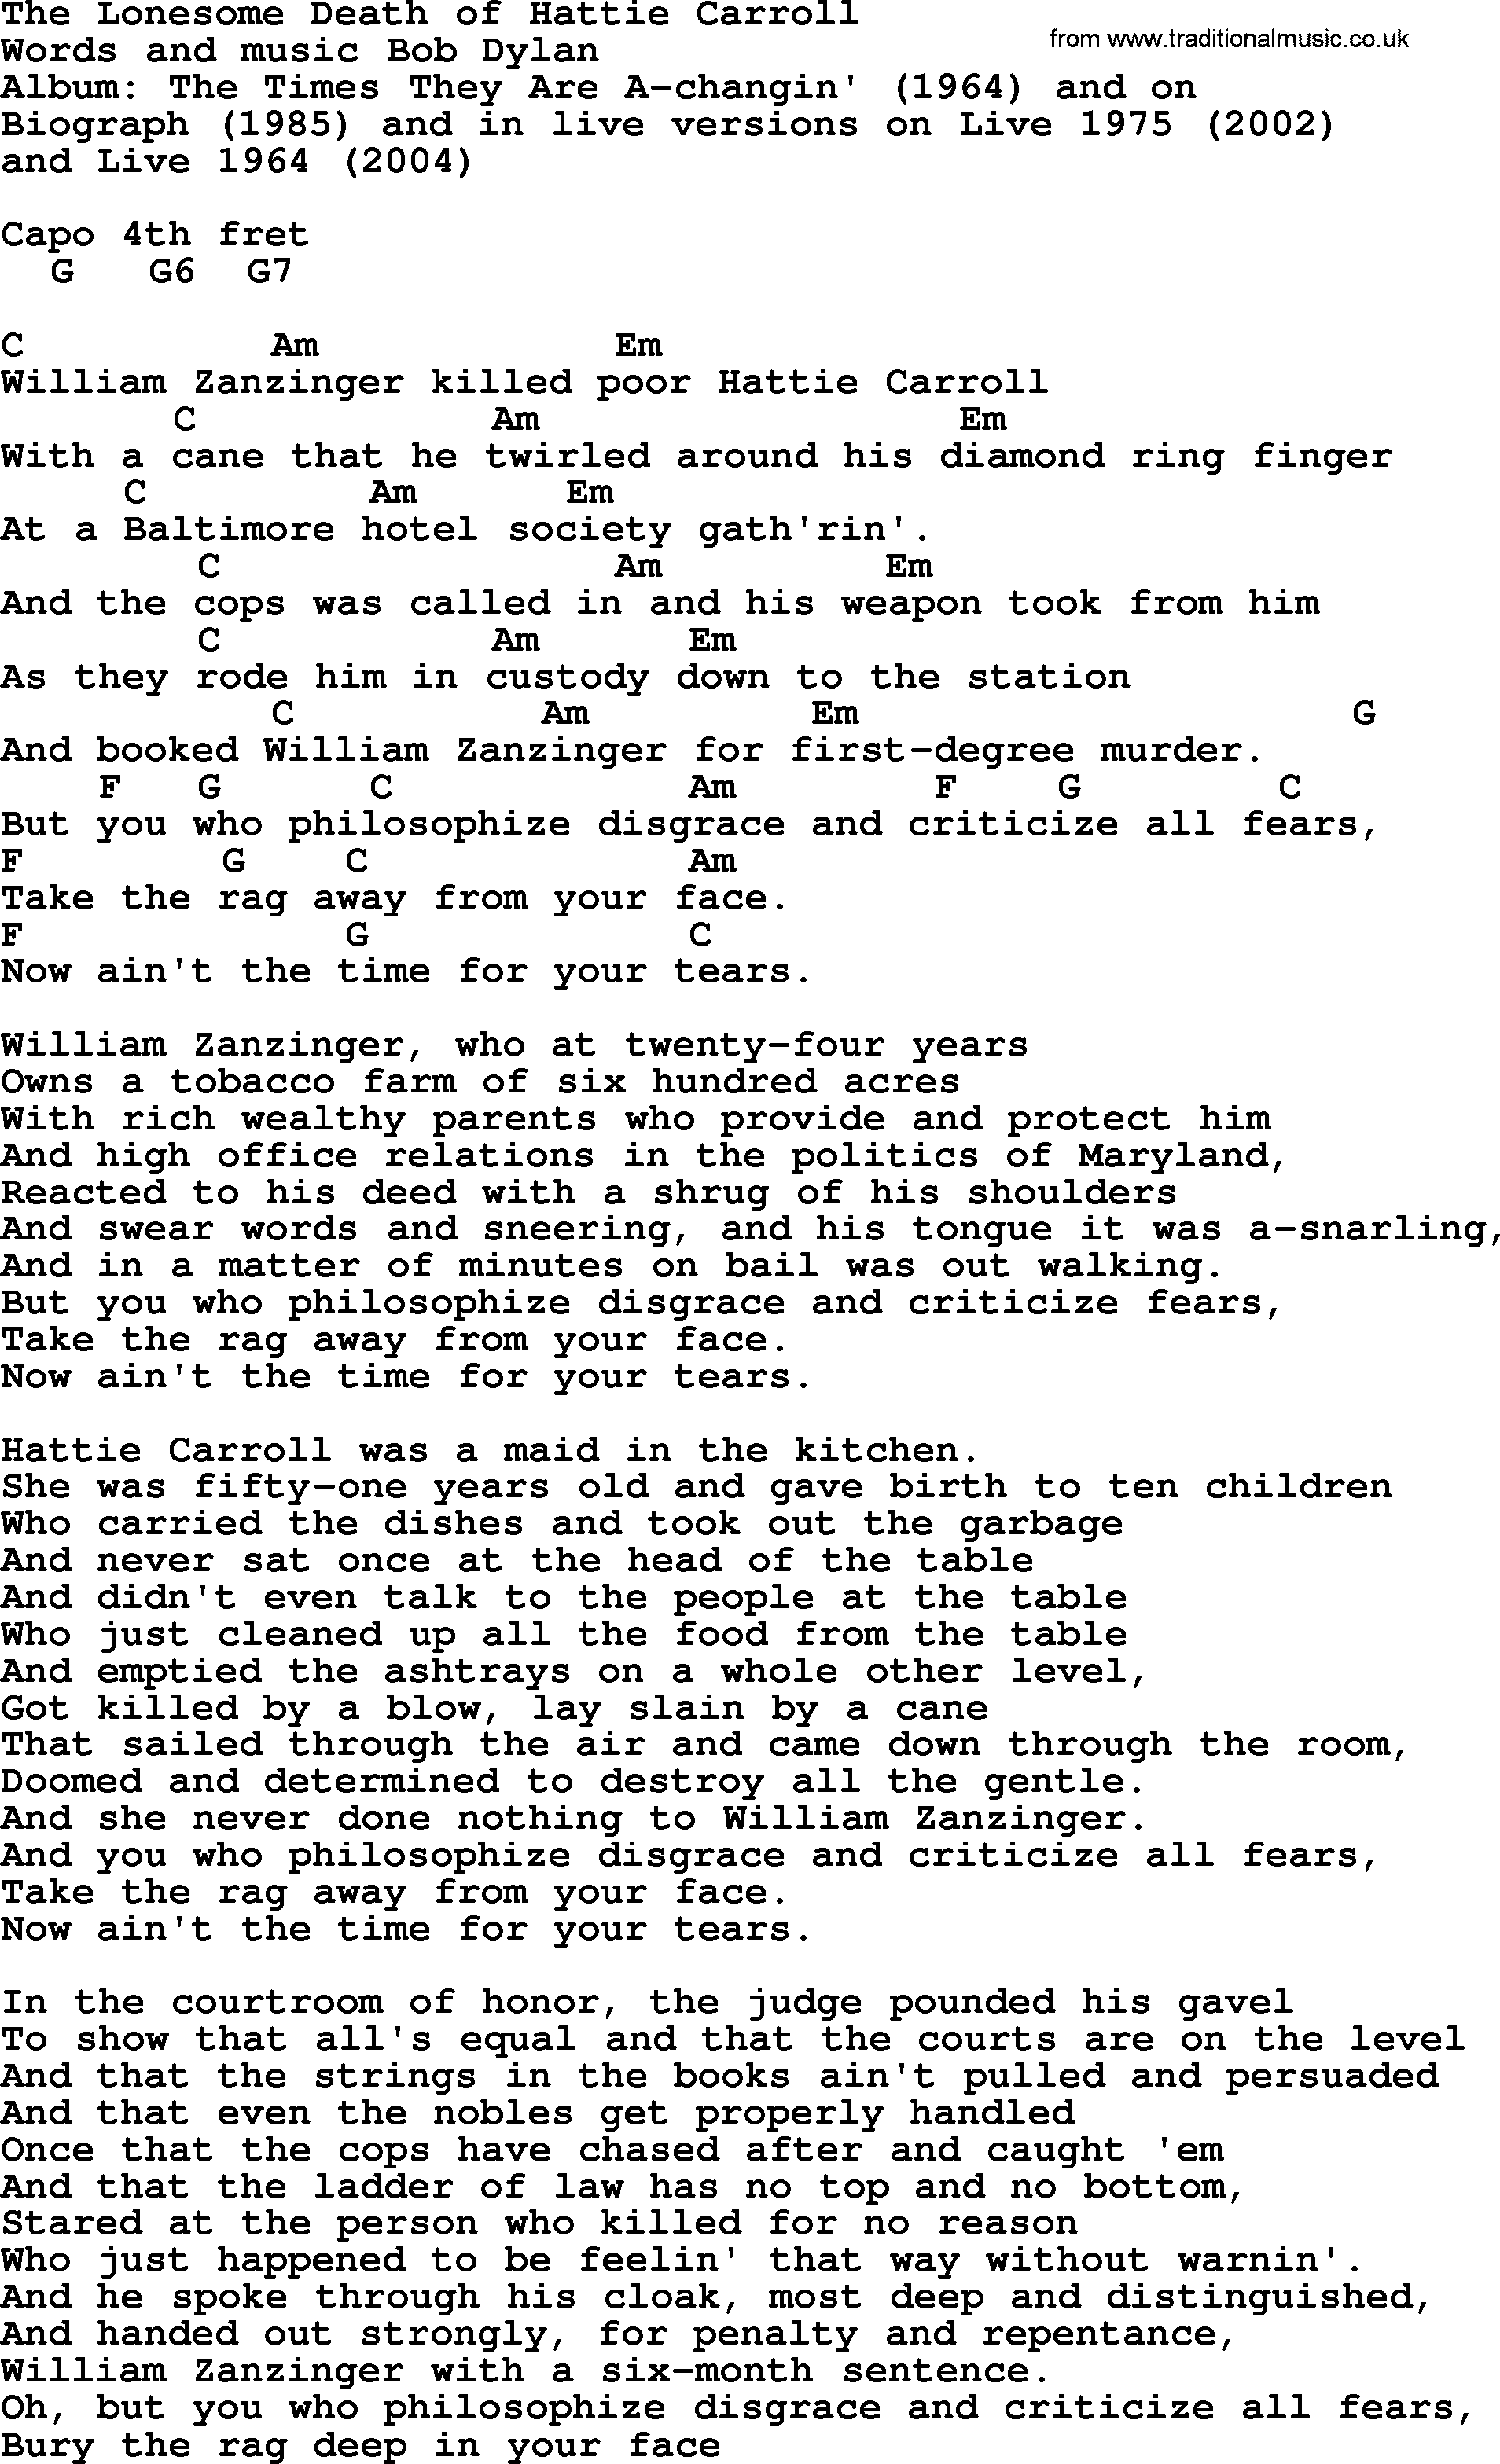 Bob dylan song the lonesome death of hattie carroll lyrics and bob dylan song lyrics with chords the lonesome death of hattie carroll hexwebz Images